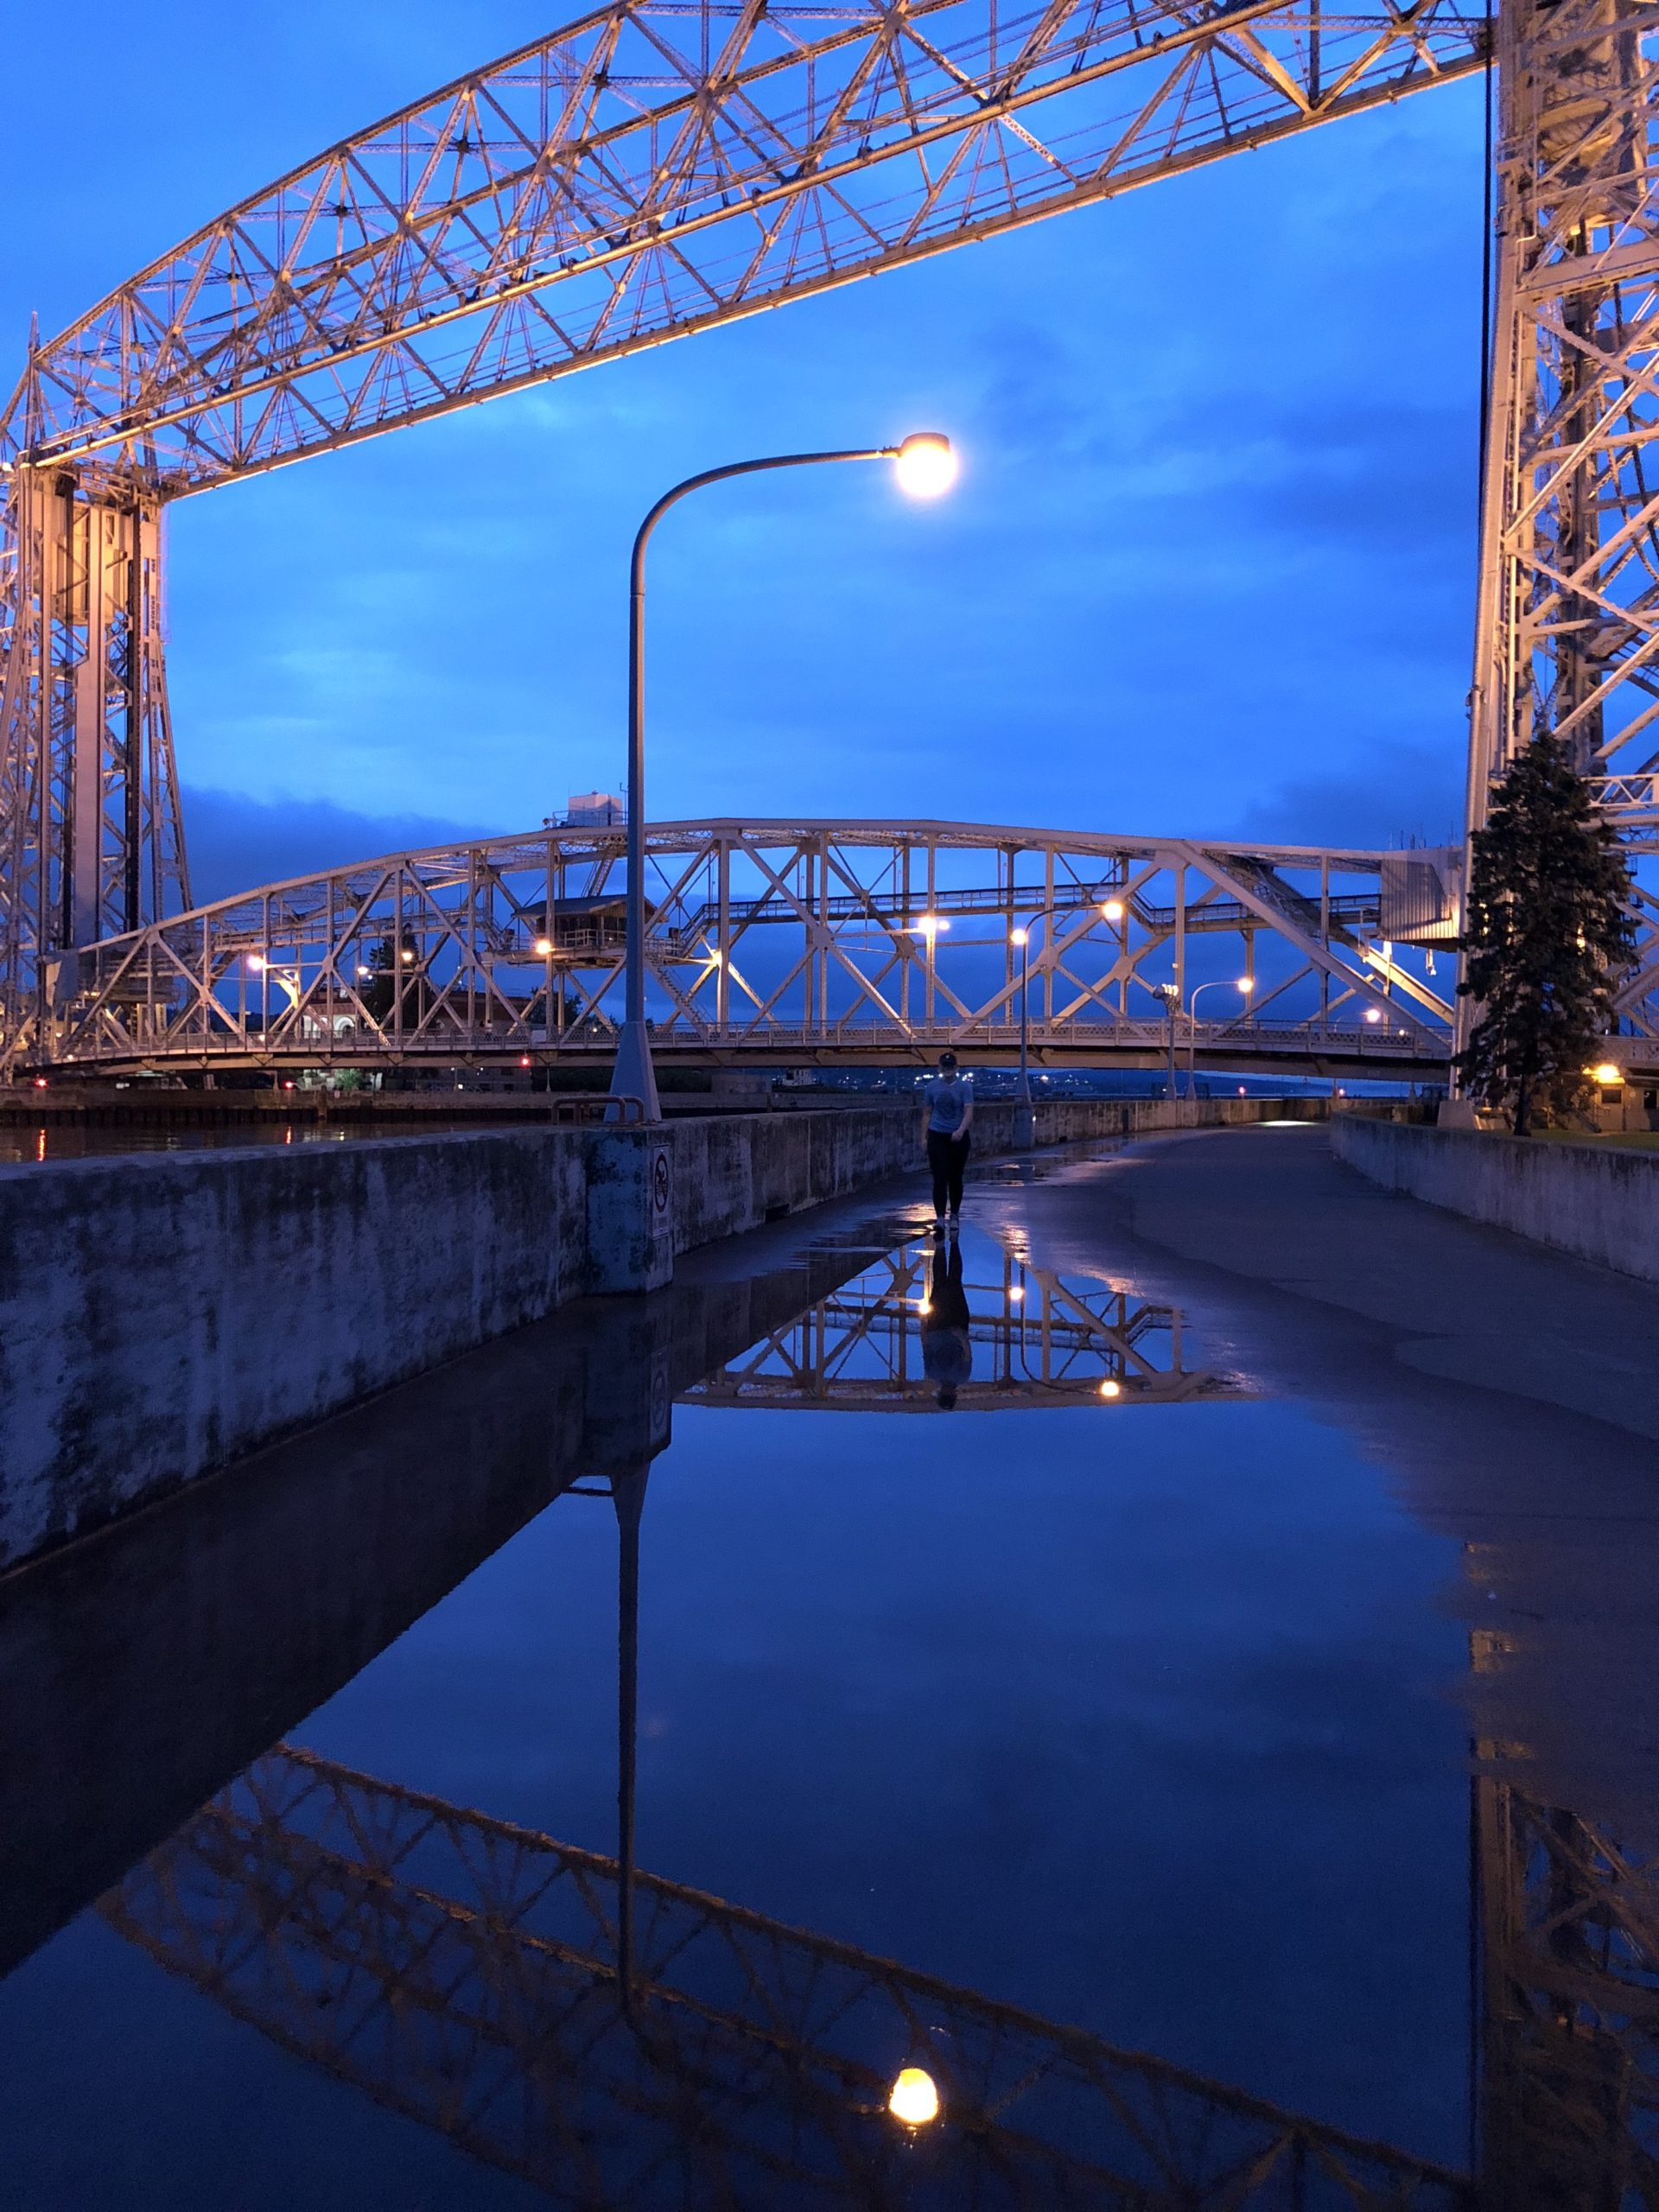 Lift bridge reflects in water on lakewalk.